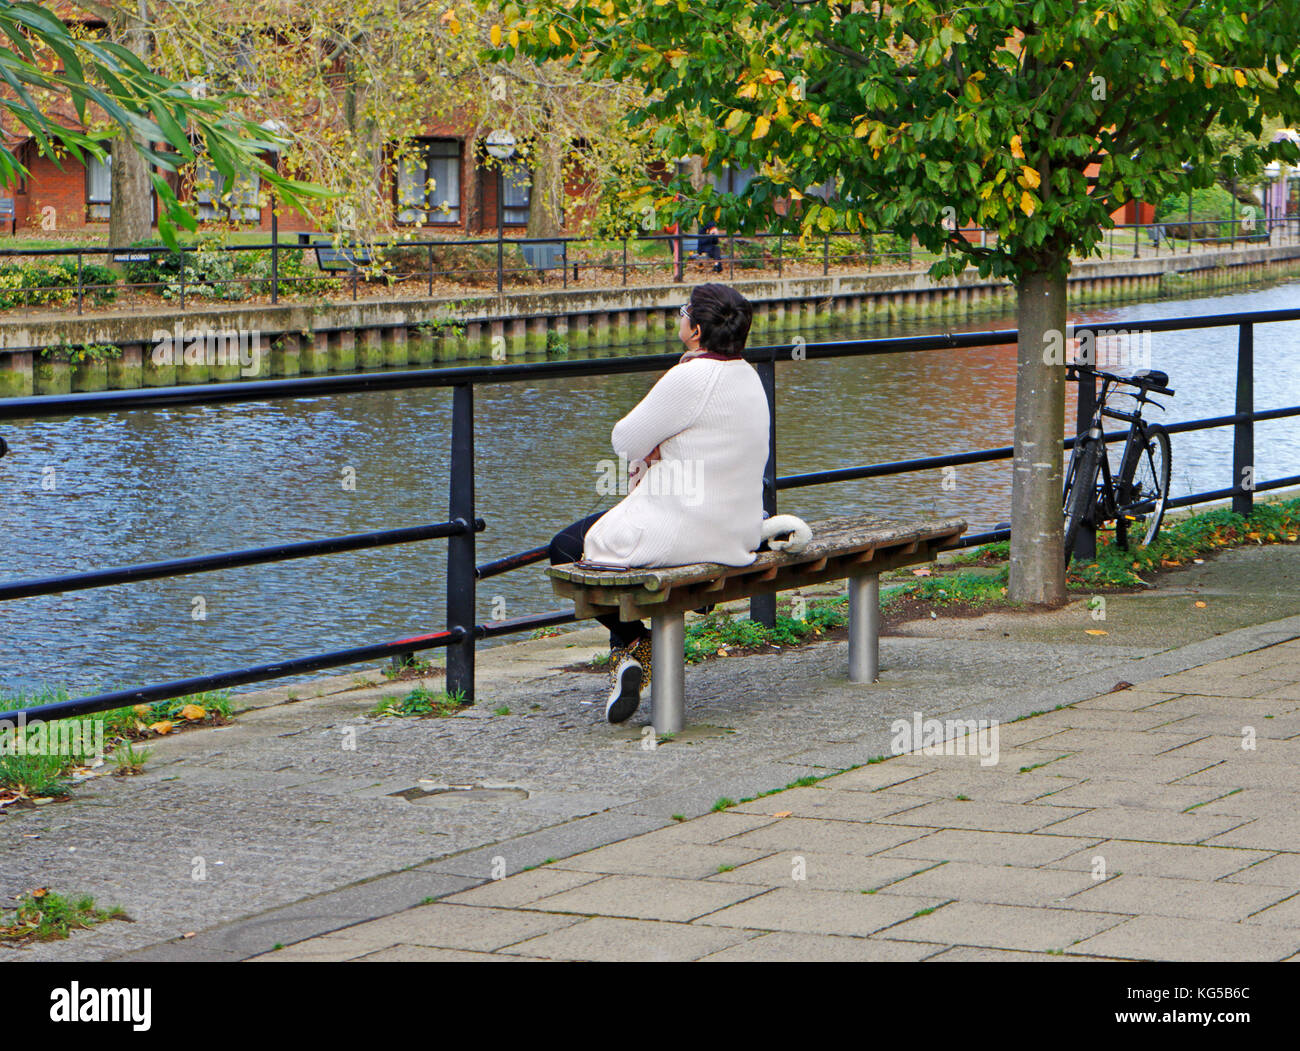 A middle aged woman sitting on a seat and staring out across a river. - Stock Image